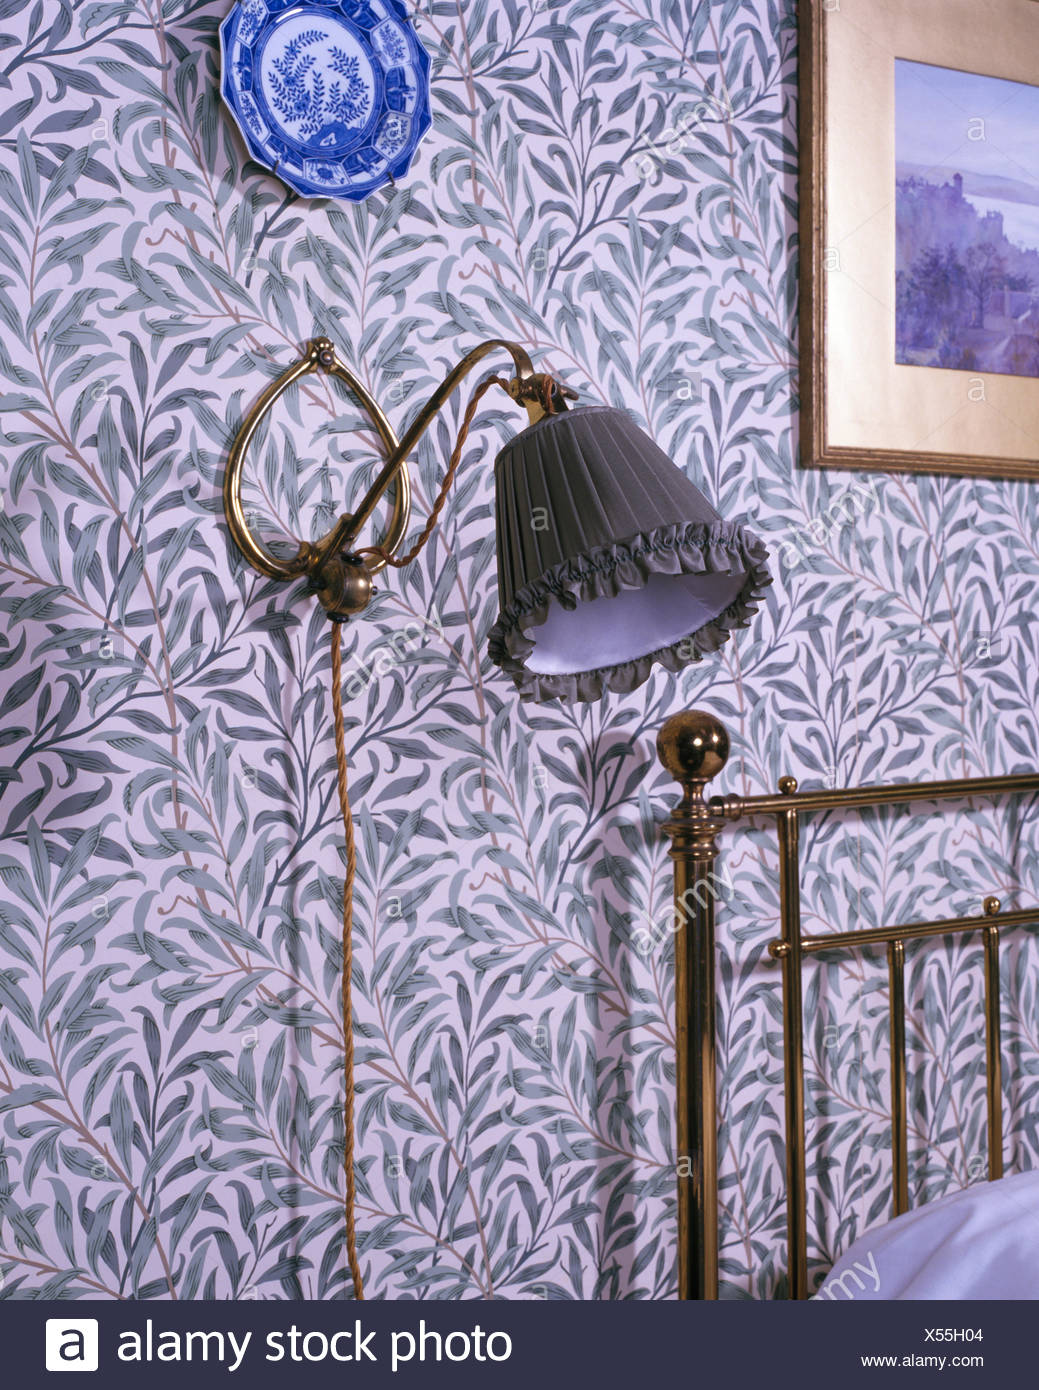 Close Up Of Lamp On Wall With William Morris Wallpaper In Victorian Style Bedroom Stock Photo Alamy